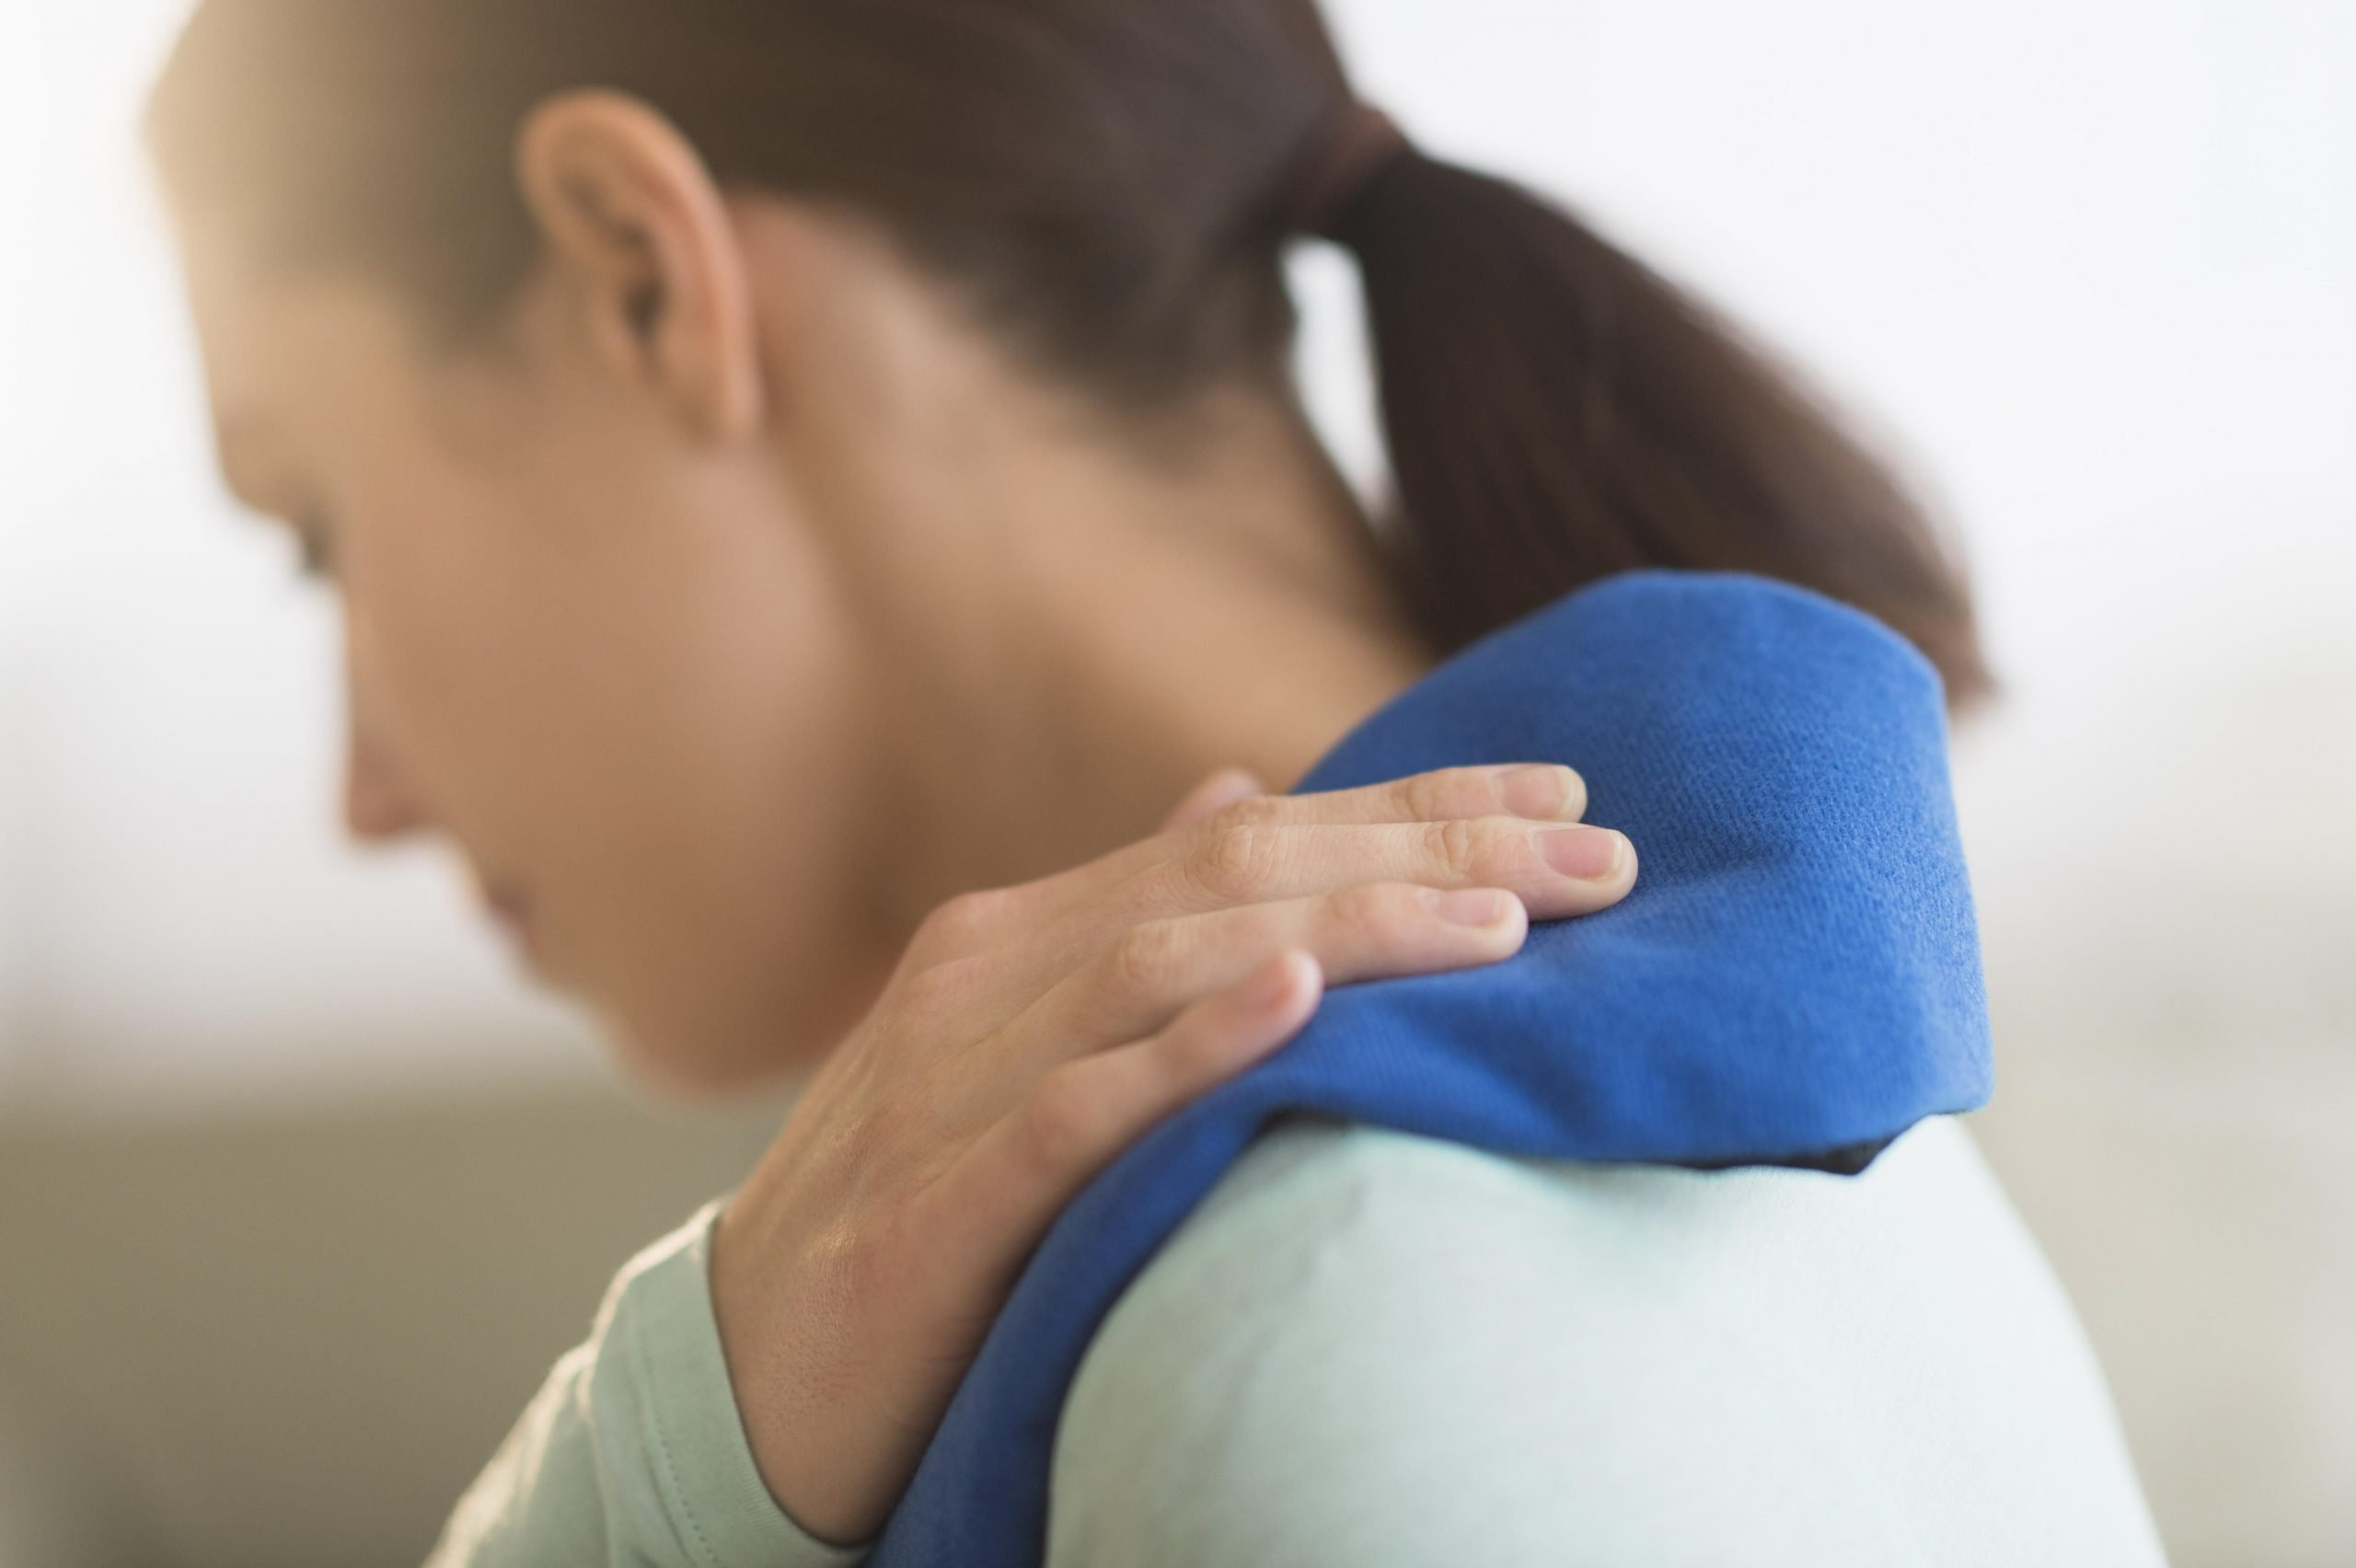 When Might Shoulder Pain Be a Sign of Lung Cancer or ...